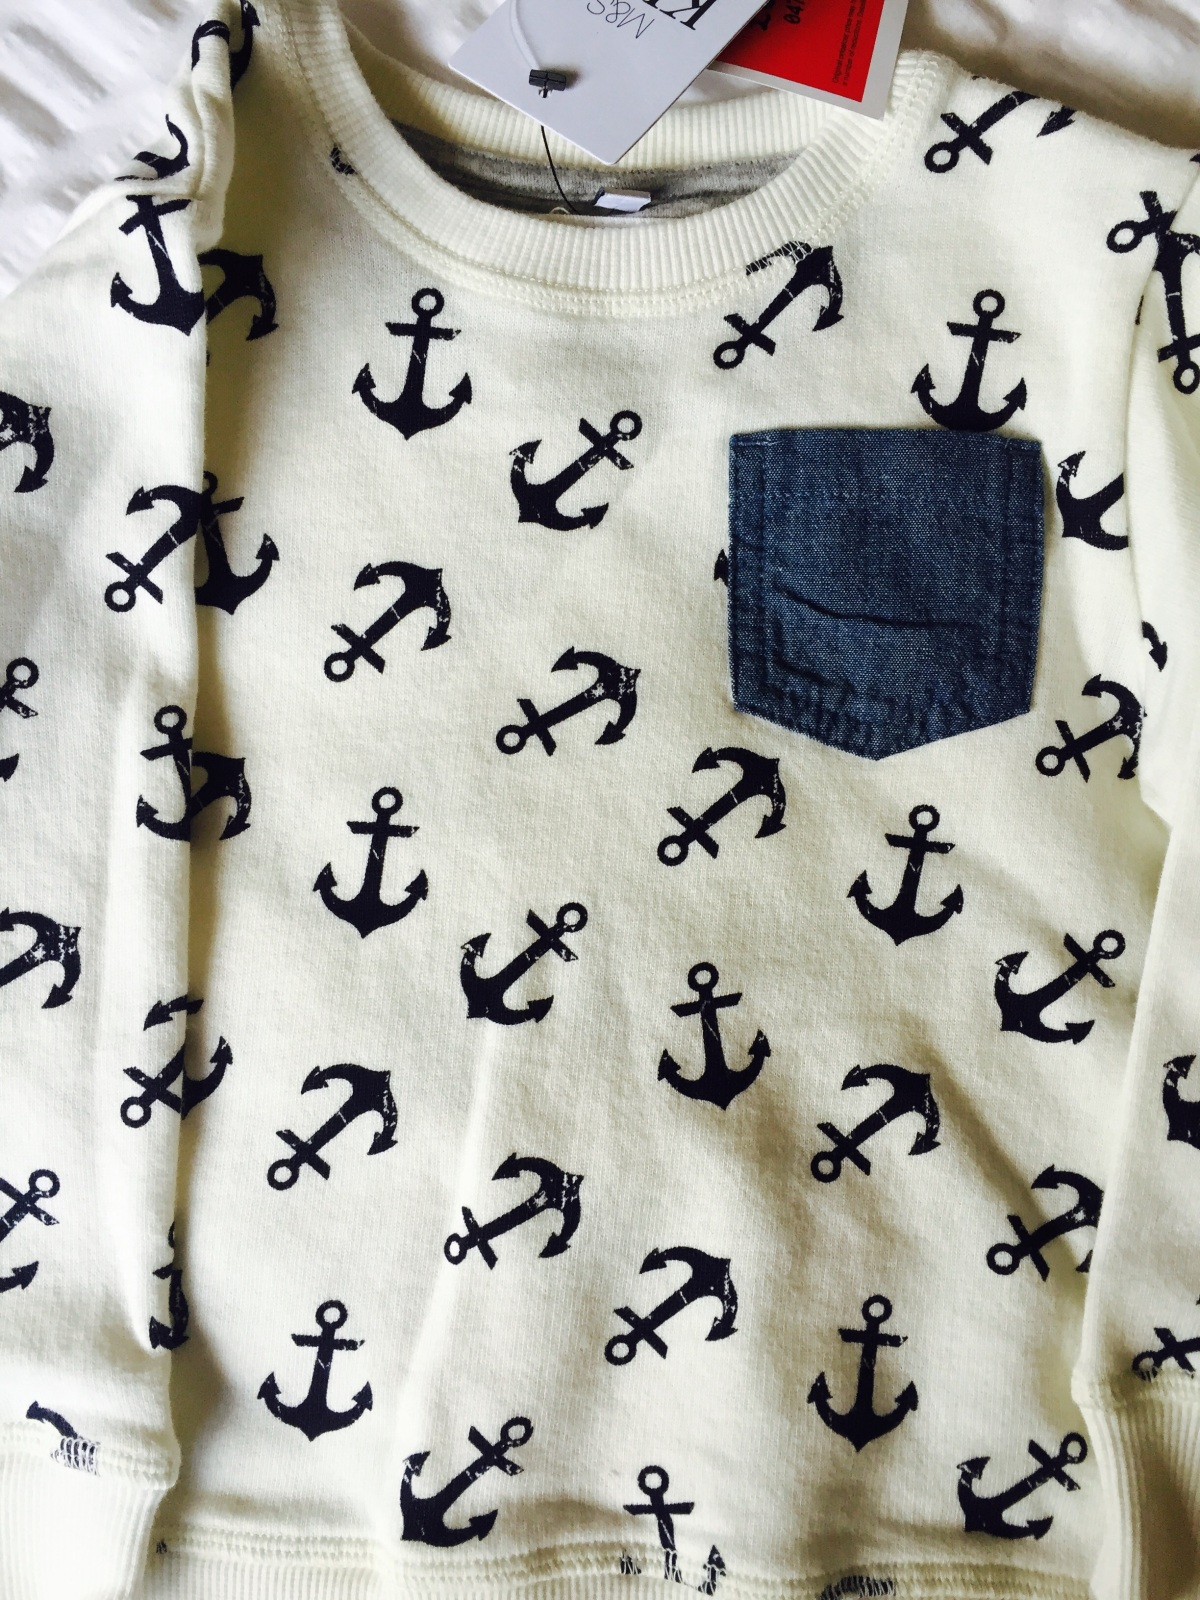 Baby boy and toddler boy clothes haul: La Redoute, Zara and H&M